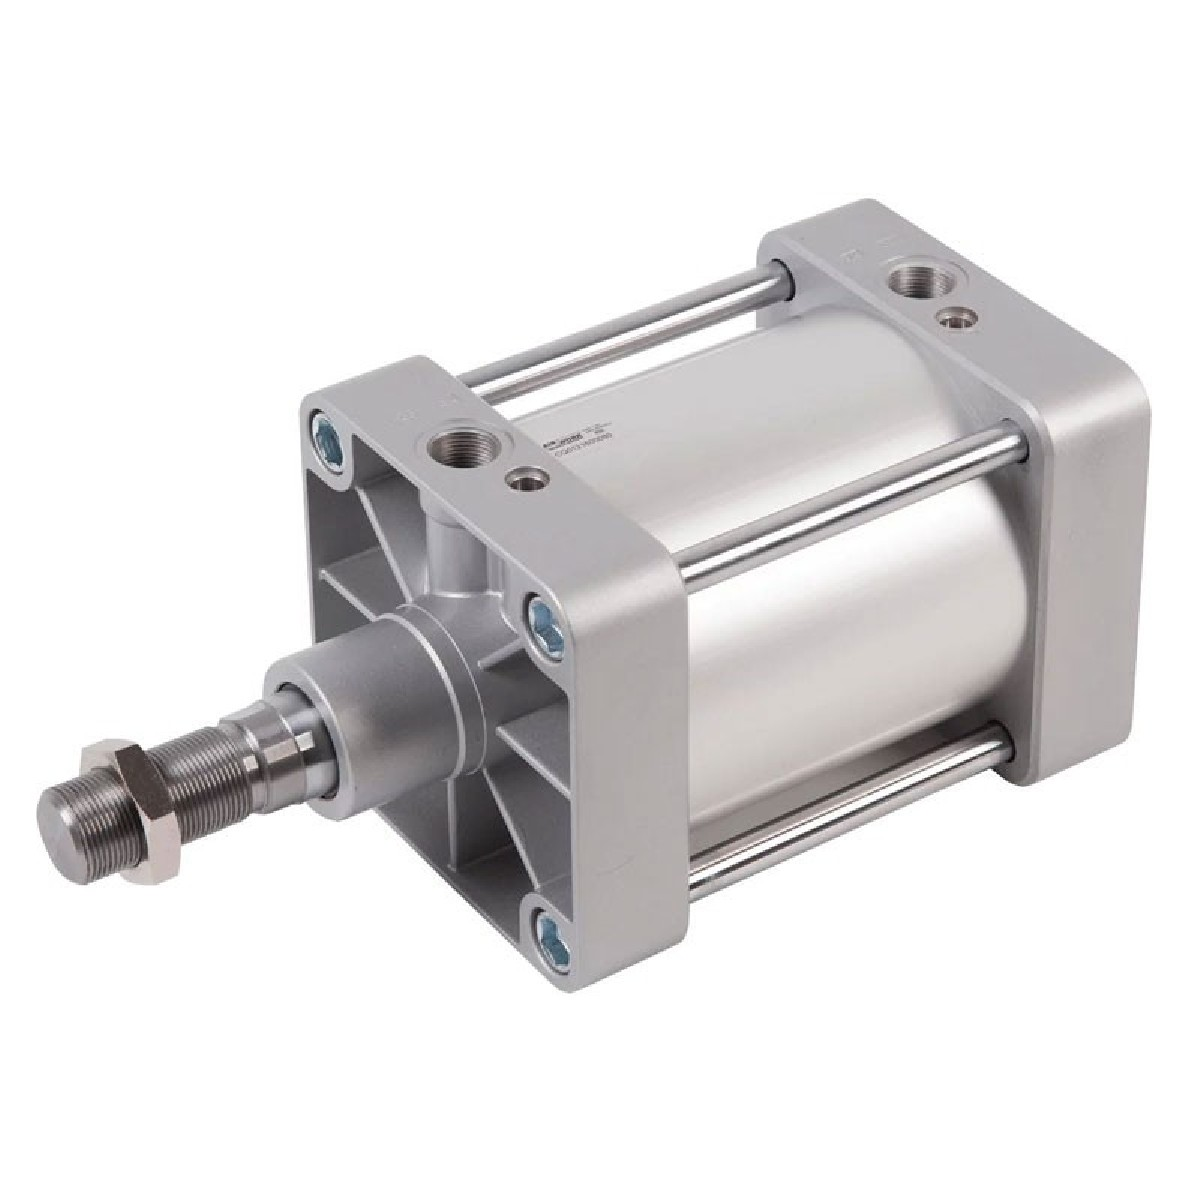 ISO 15552 Cylinders – CQ Series